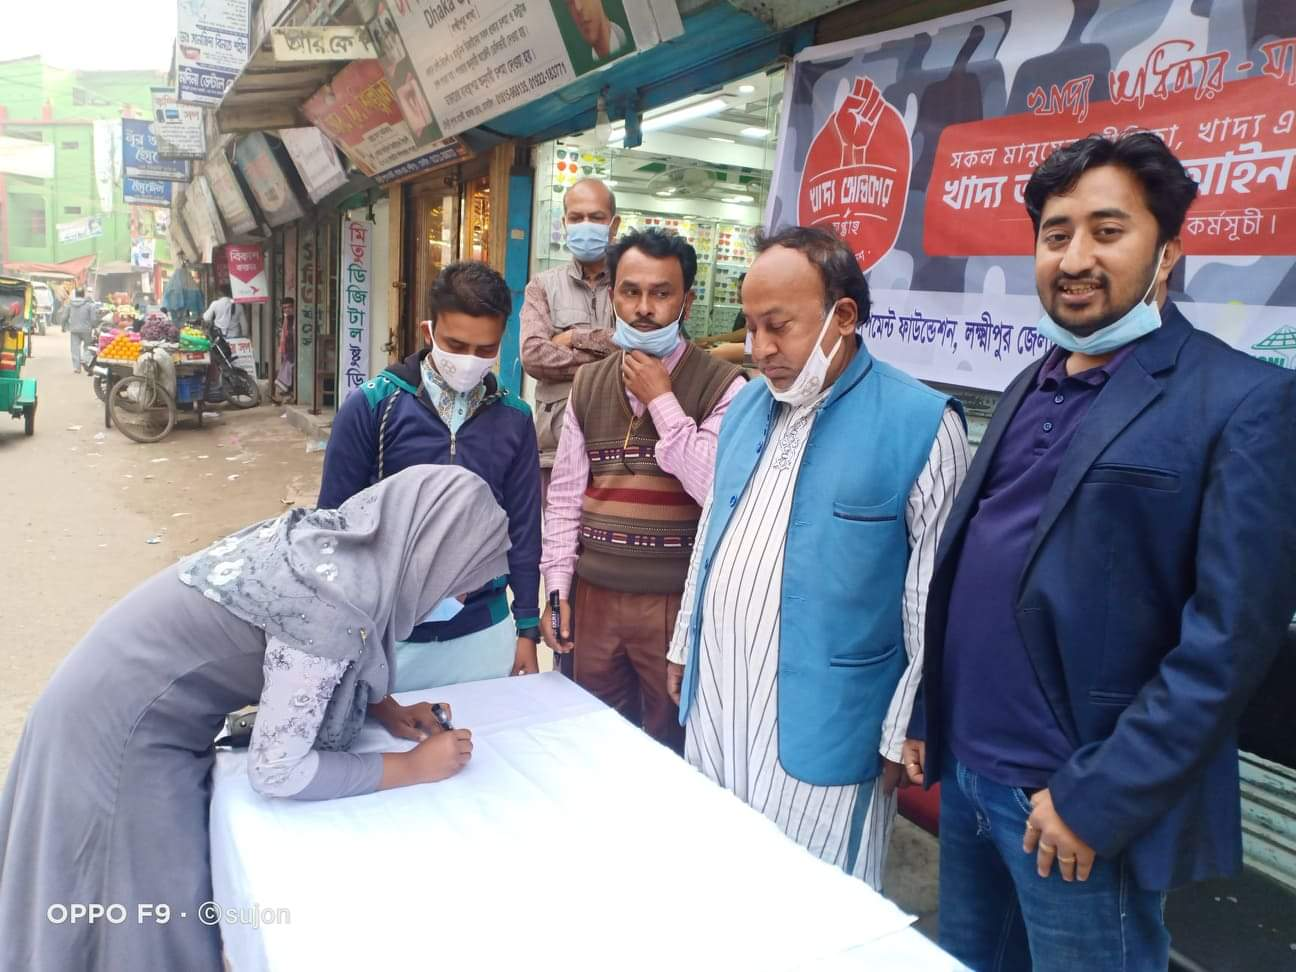 A mass signature program was held in Laxmipur demanding enactment of Right to Food Act.